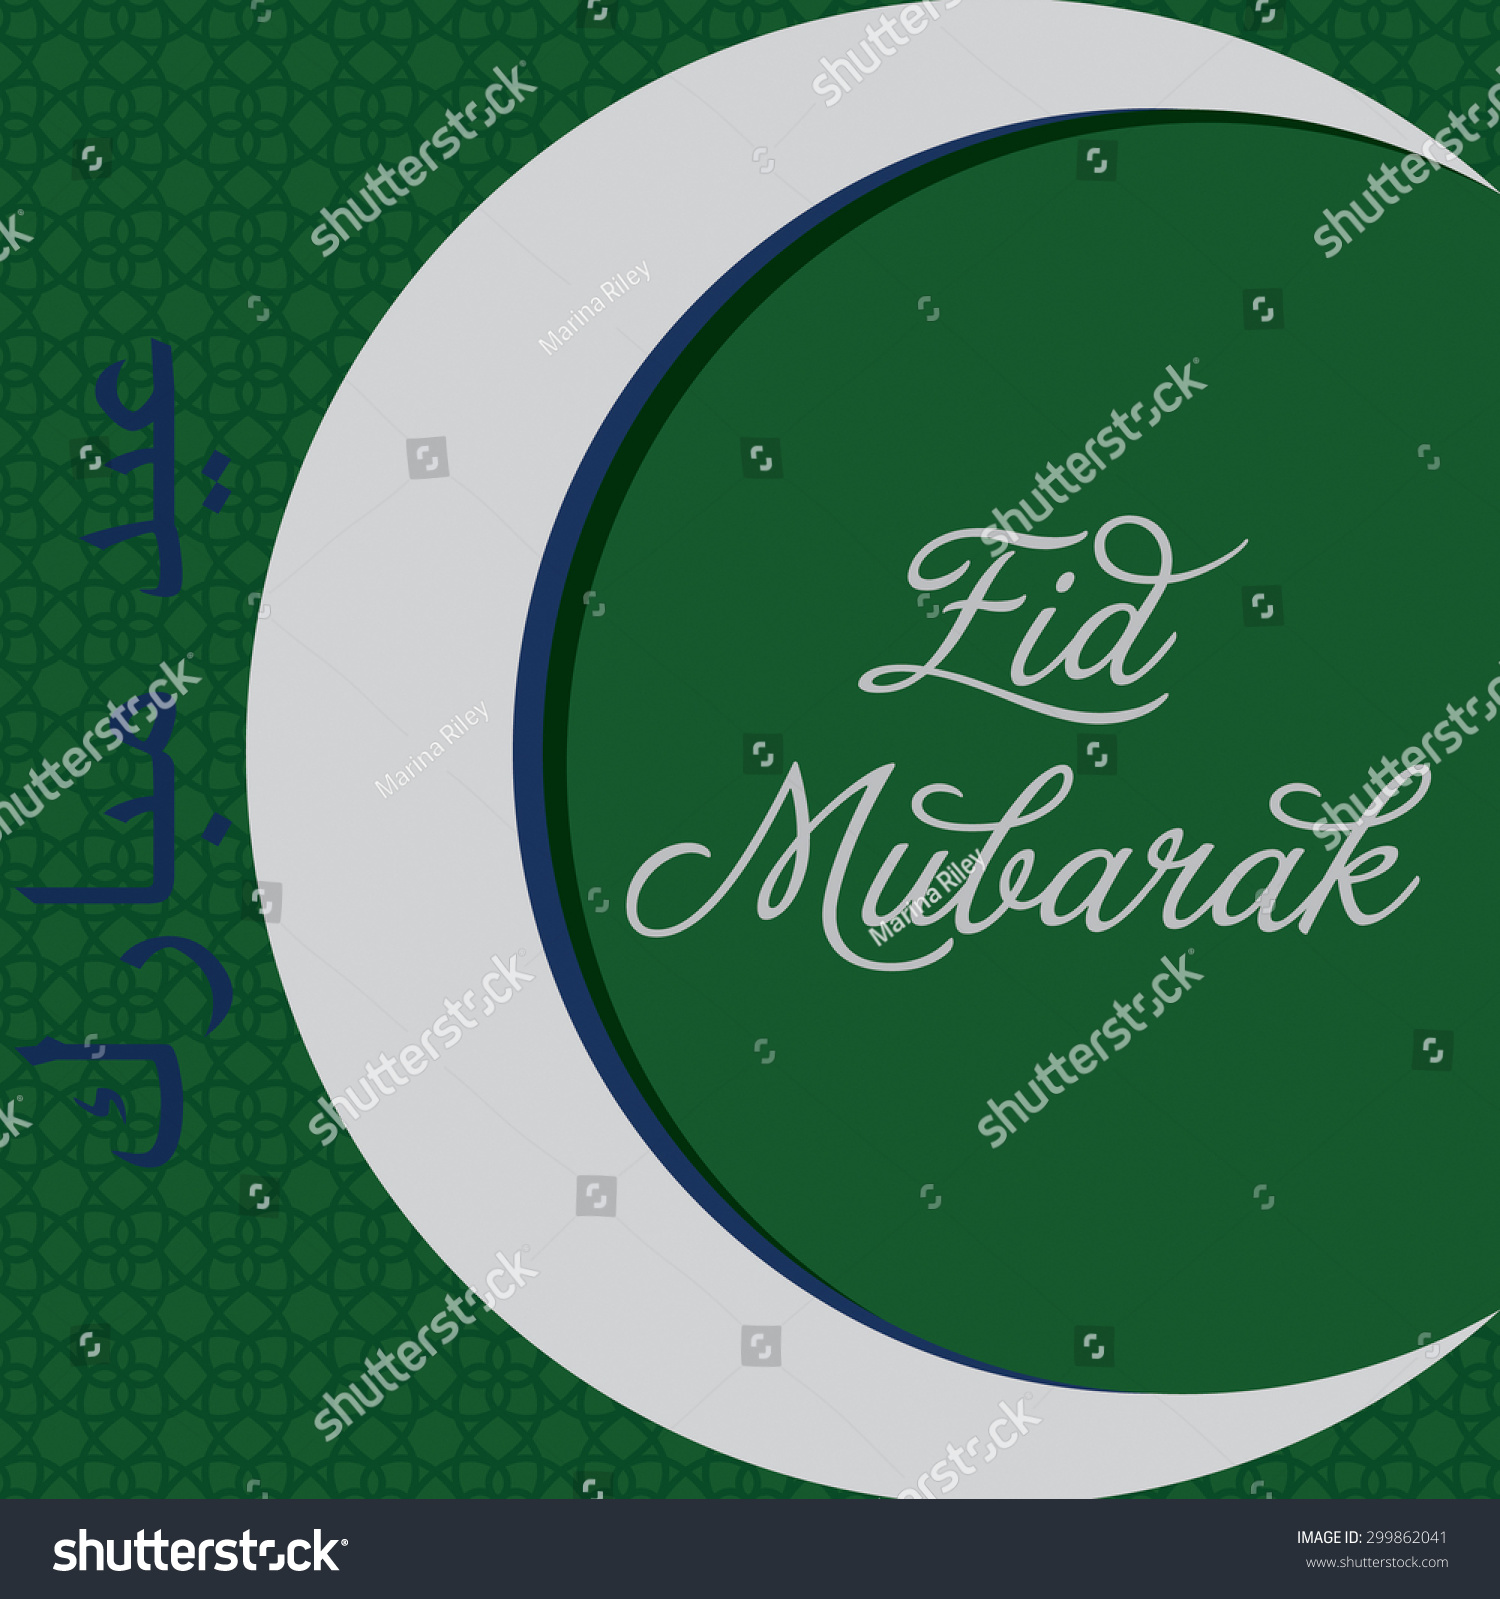 Eid mubarak blessed eid cut out stock vector 299862041 shutterstock eid mubarak blessed eid cut out greeting card in vector format kristyandbryce Image collections